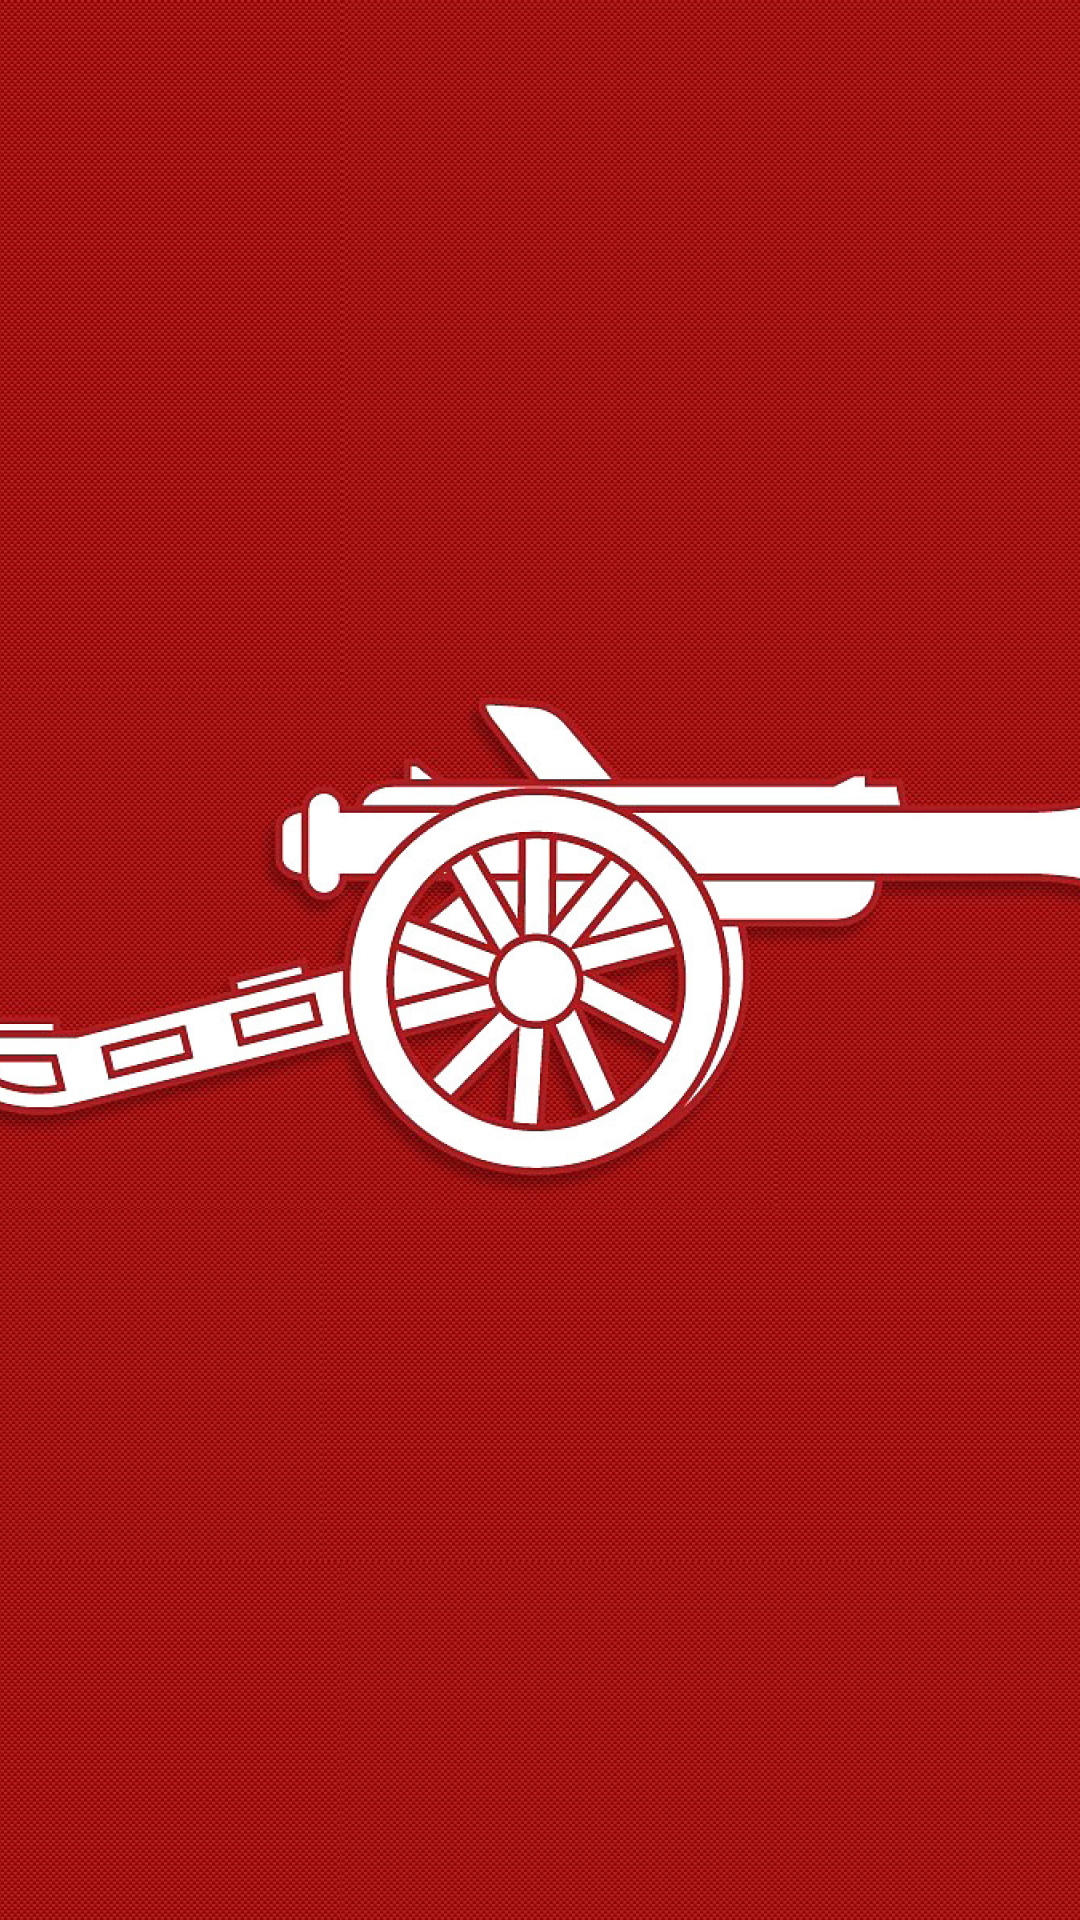 iphone 11 pro wallpaper arsenal